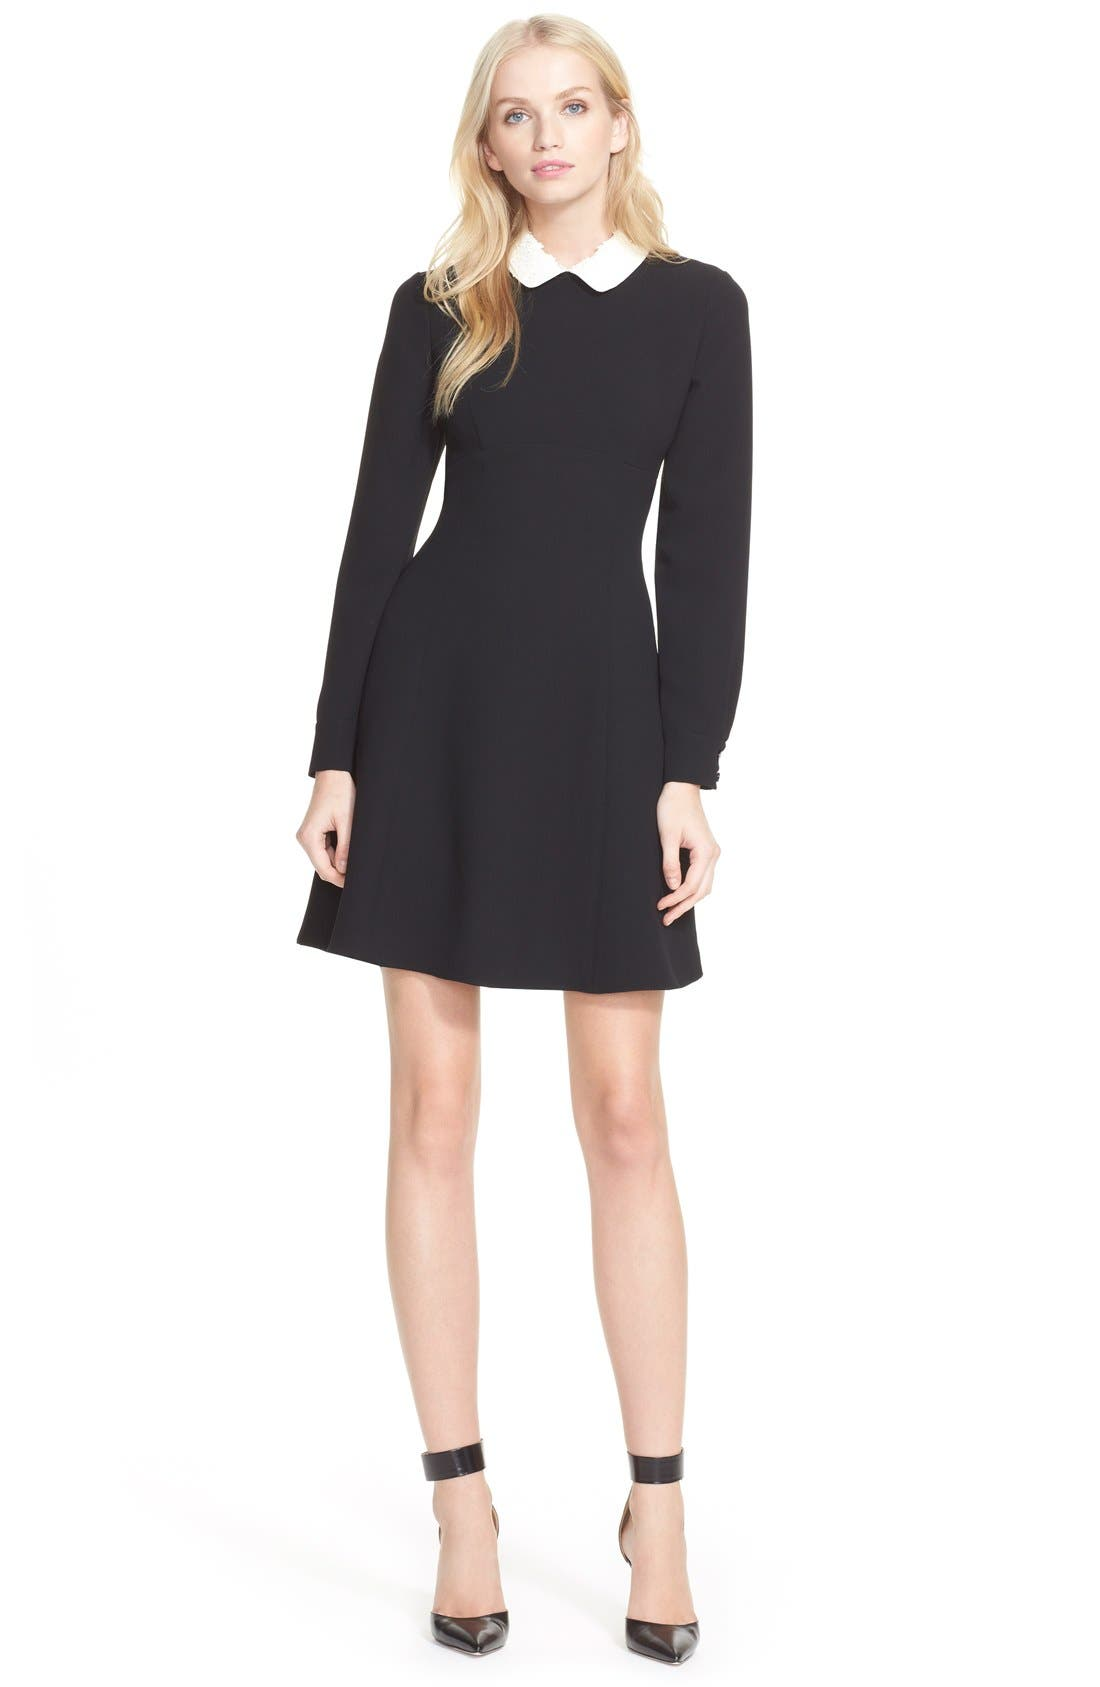 kate spade new york long sleeve sequin collar dress, Main, color, 001